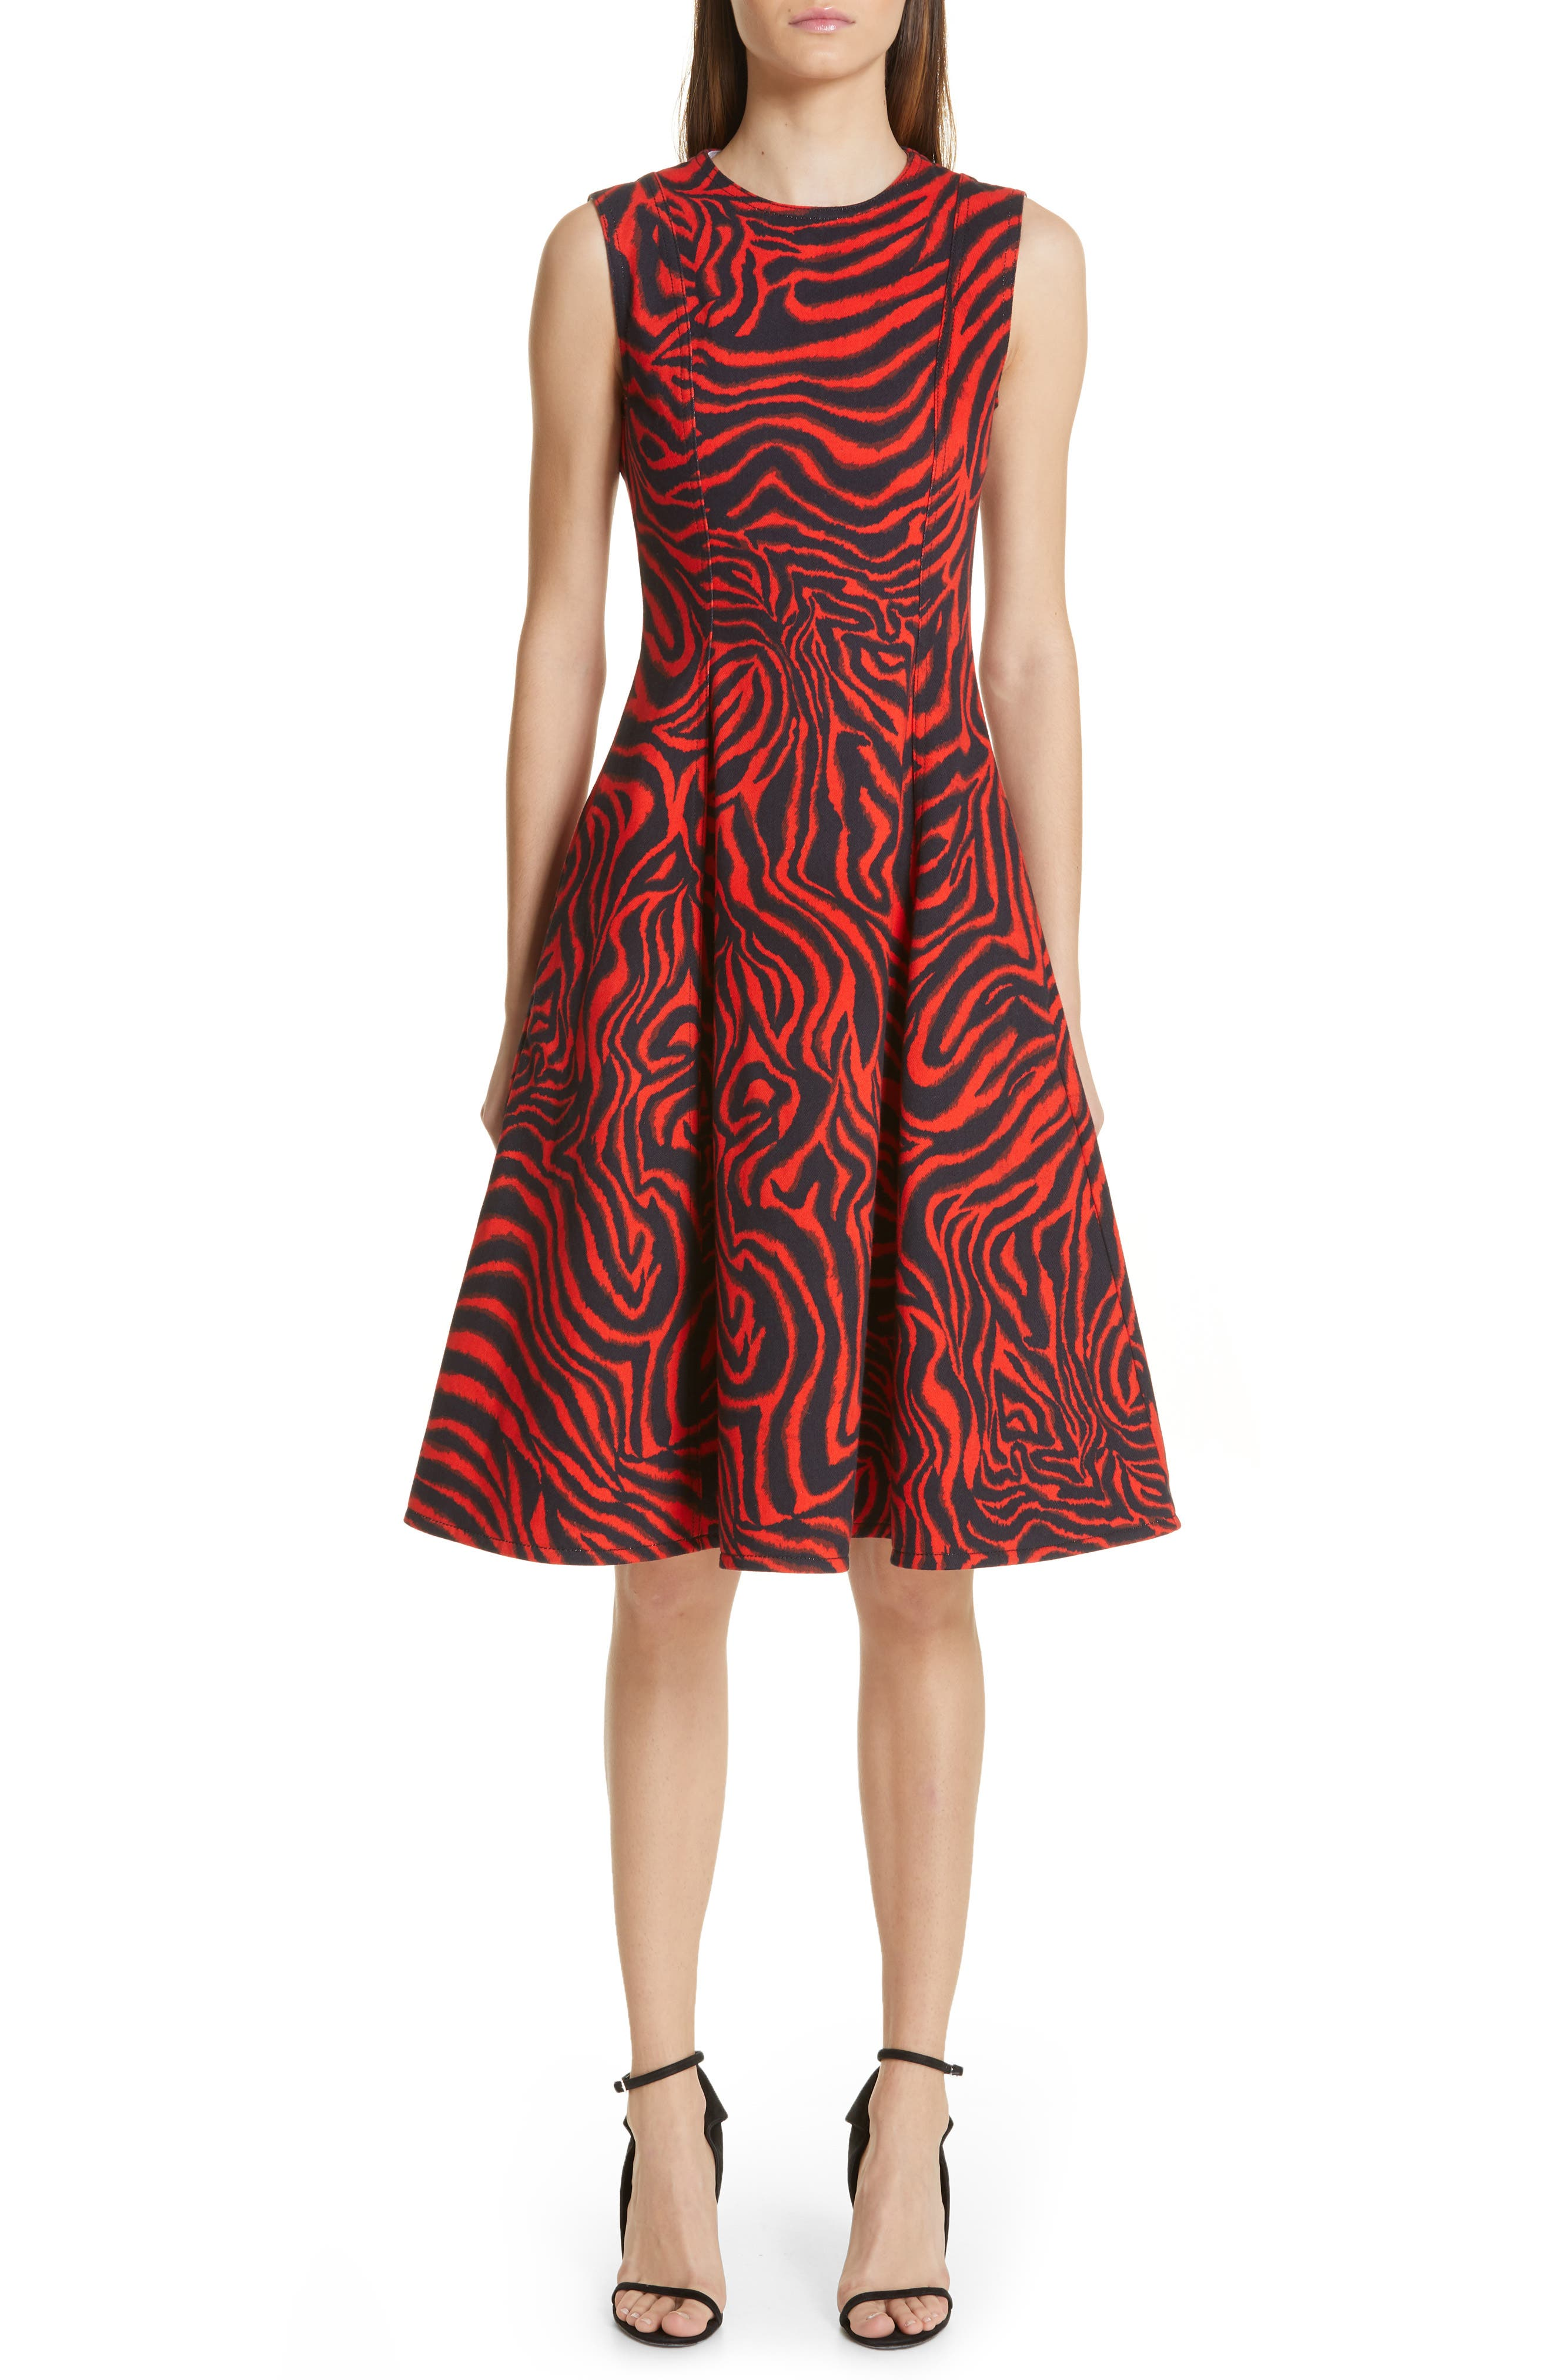 CALVIN KLEIN 205W39NYC Zebra Print Denim A-Line Dress, Main, color, RED ZEBRA